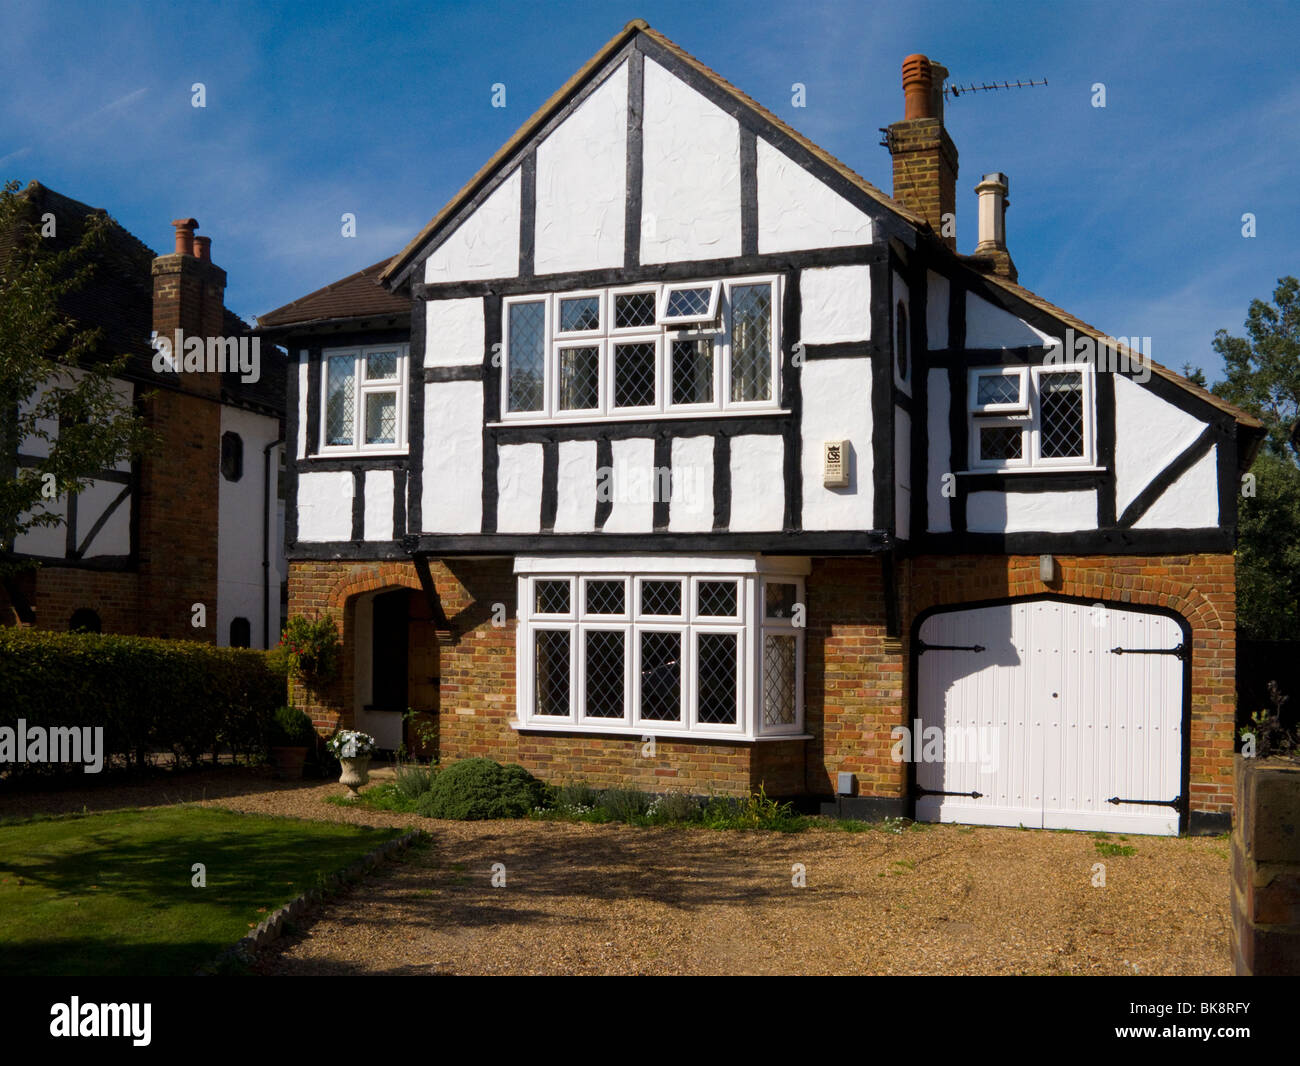 Mock Tudor black and white 1930's house with garage and a ...